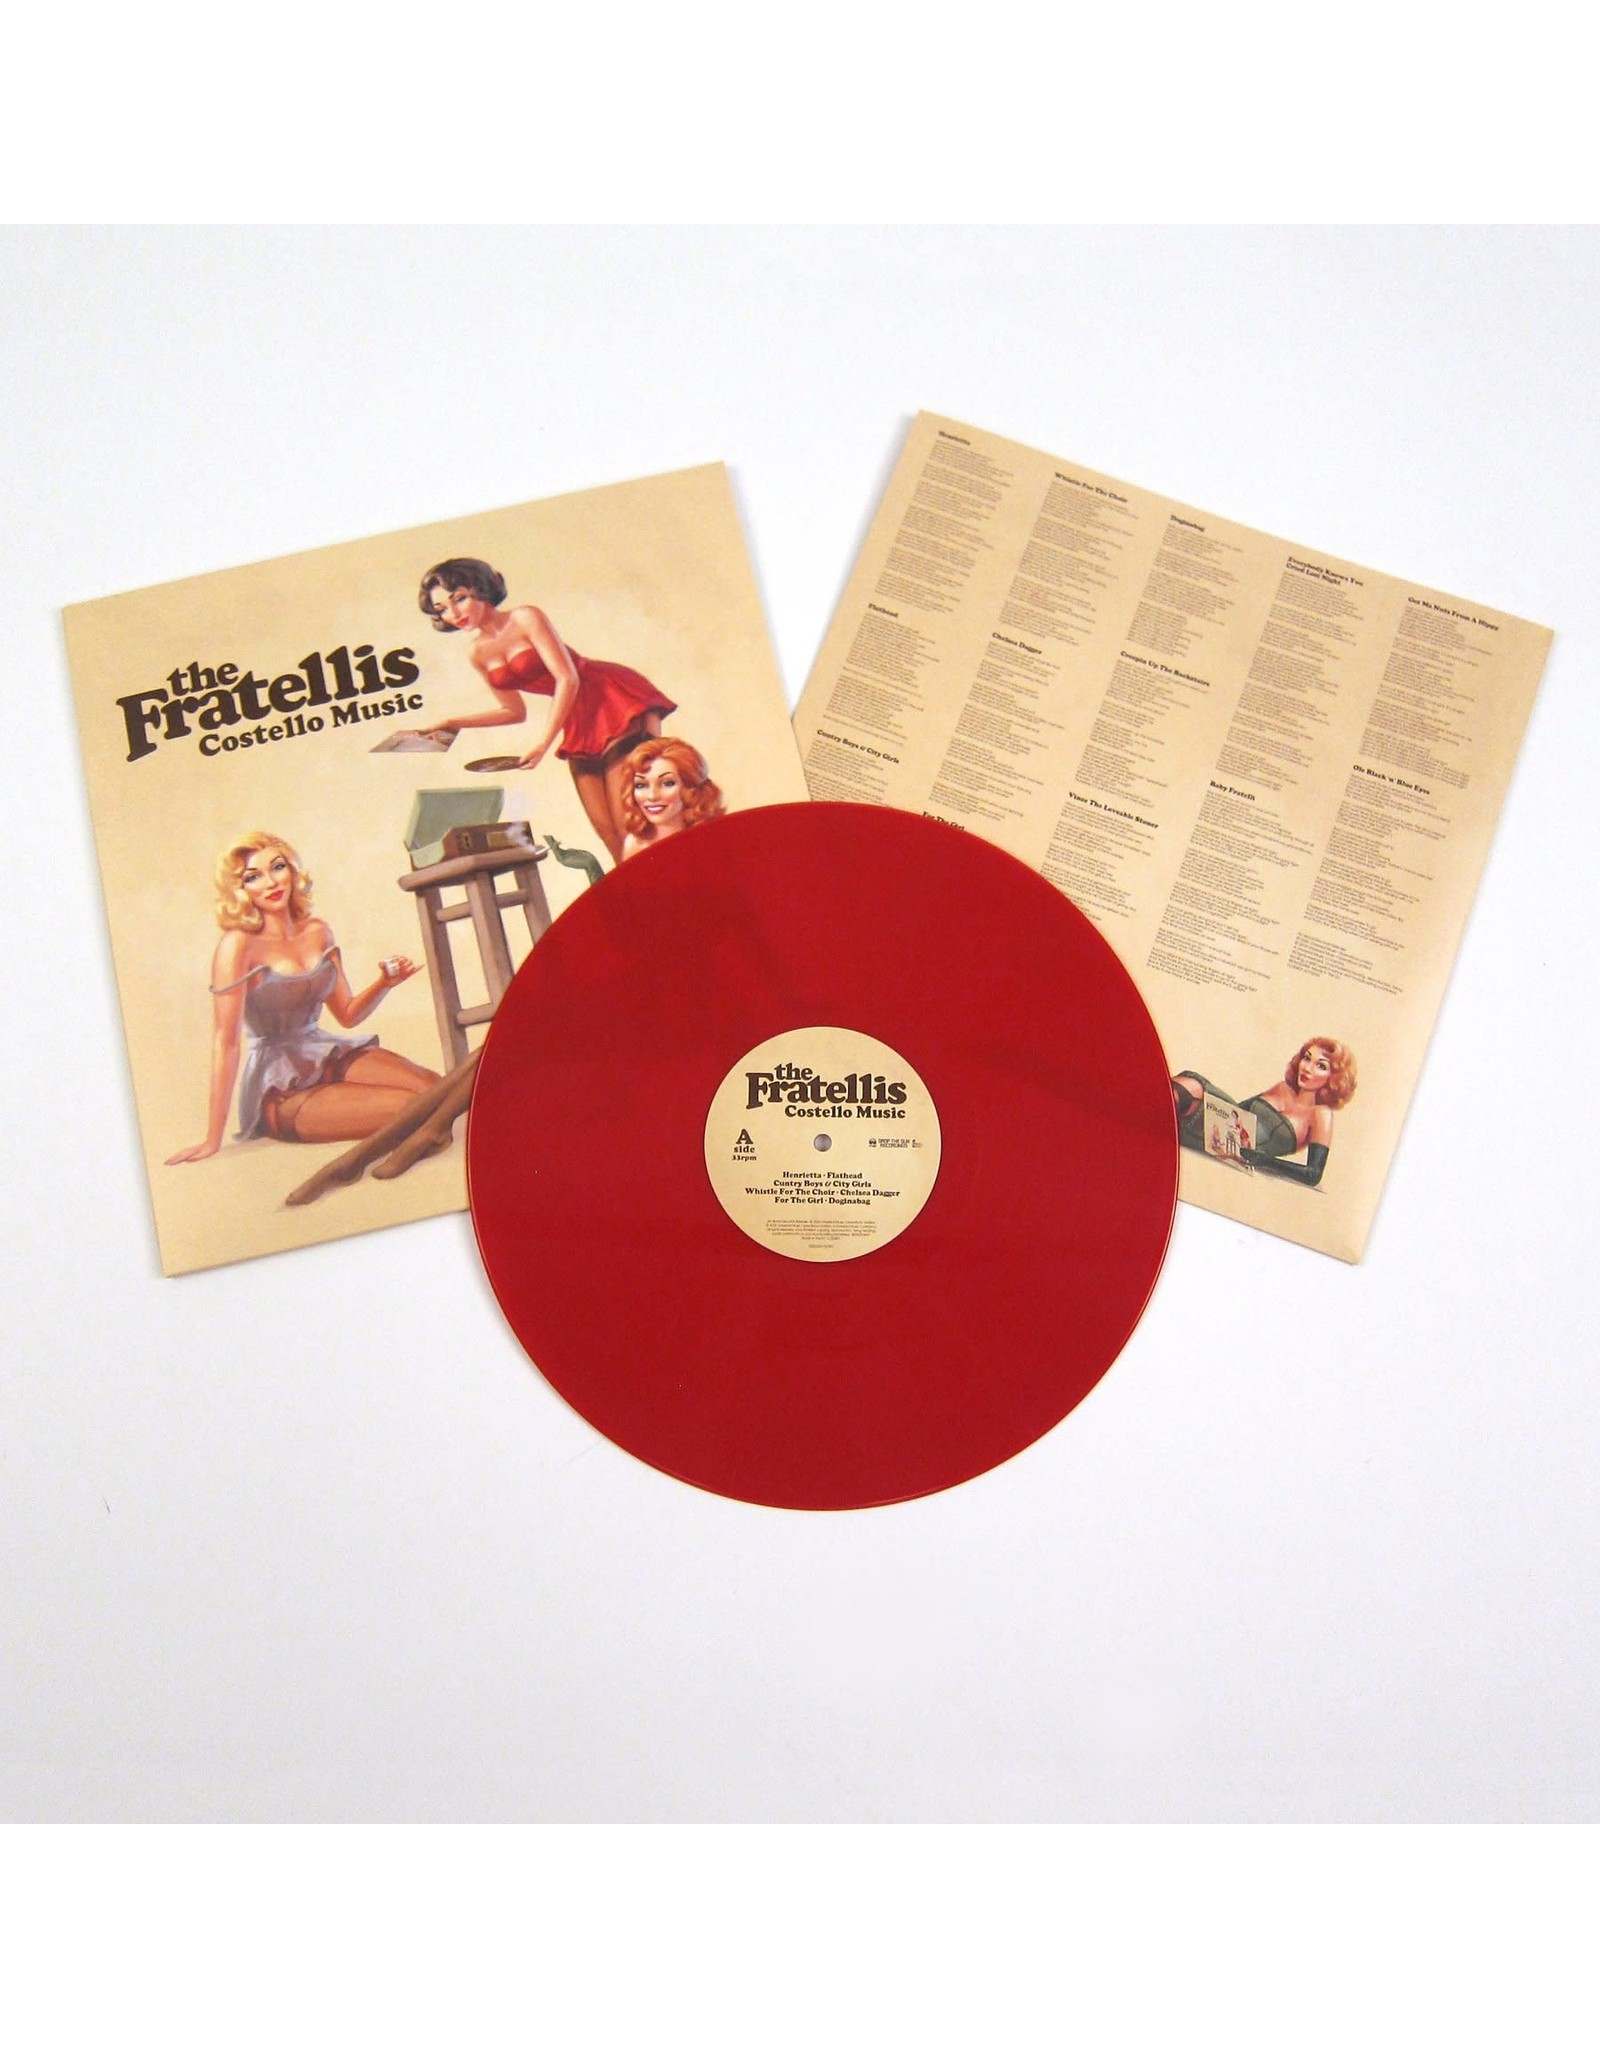 Fratellis - Costello Music